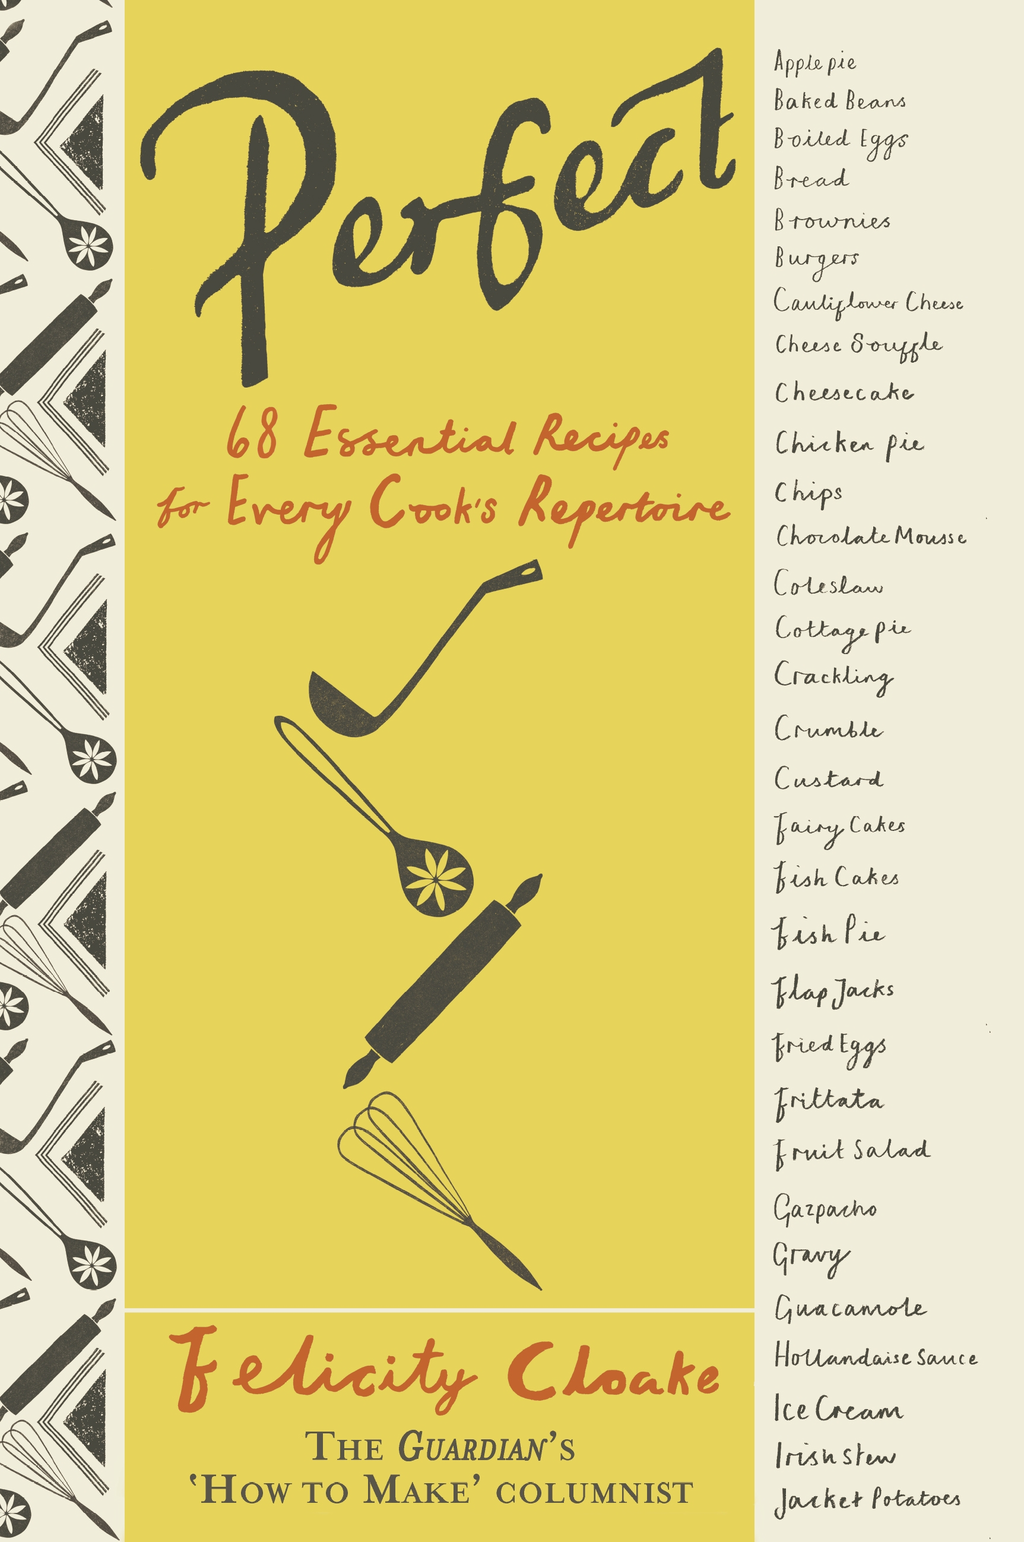 Perfect 68 Essential Recipes for Every Cook's Repertoire